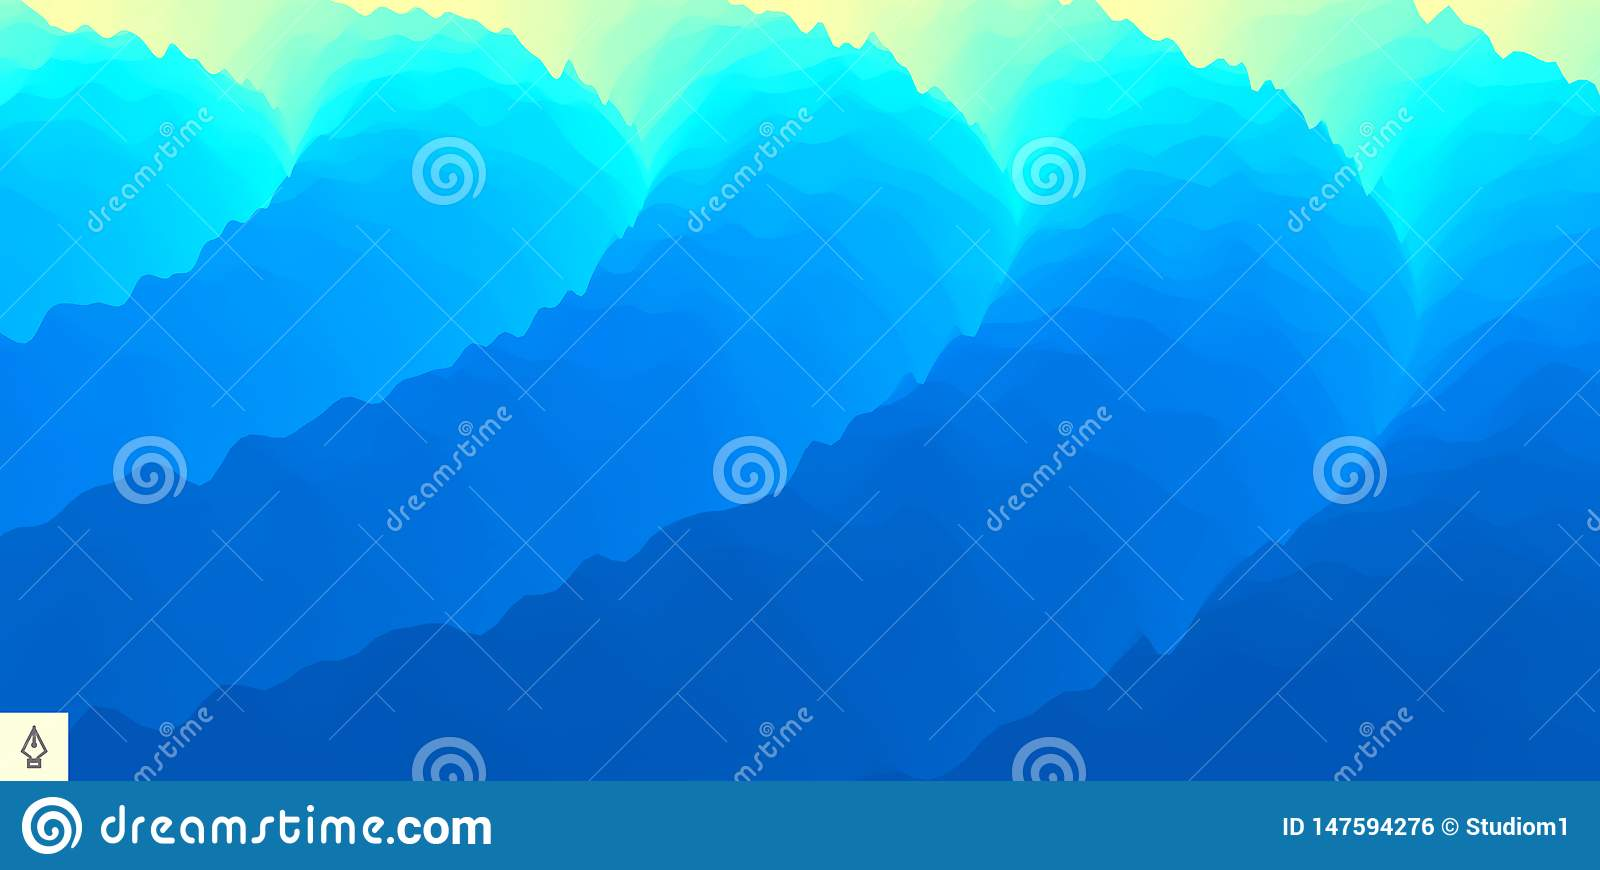 Abstract background with dynamic effect. Motion vector Illustration. Trendy gradients. Can be used for advertising, marketing,